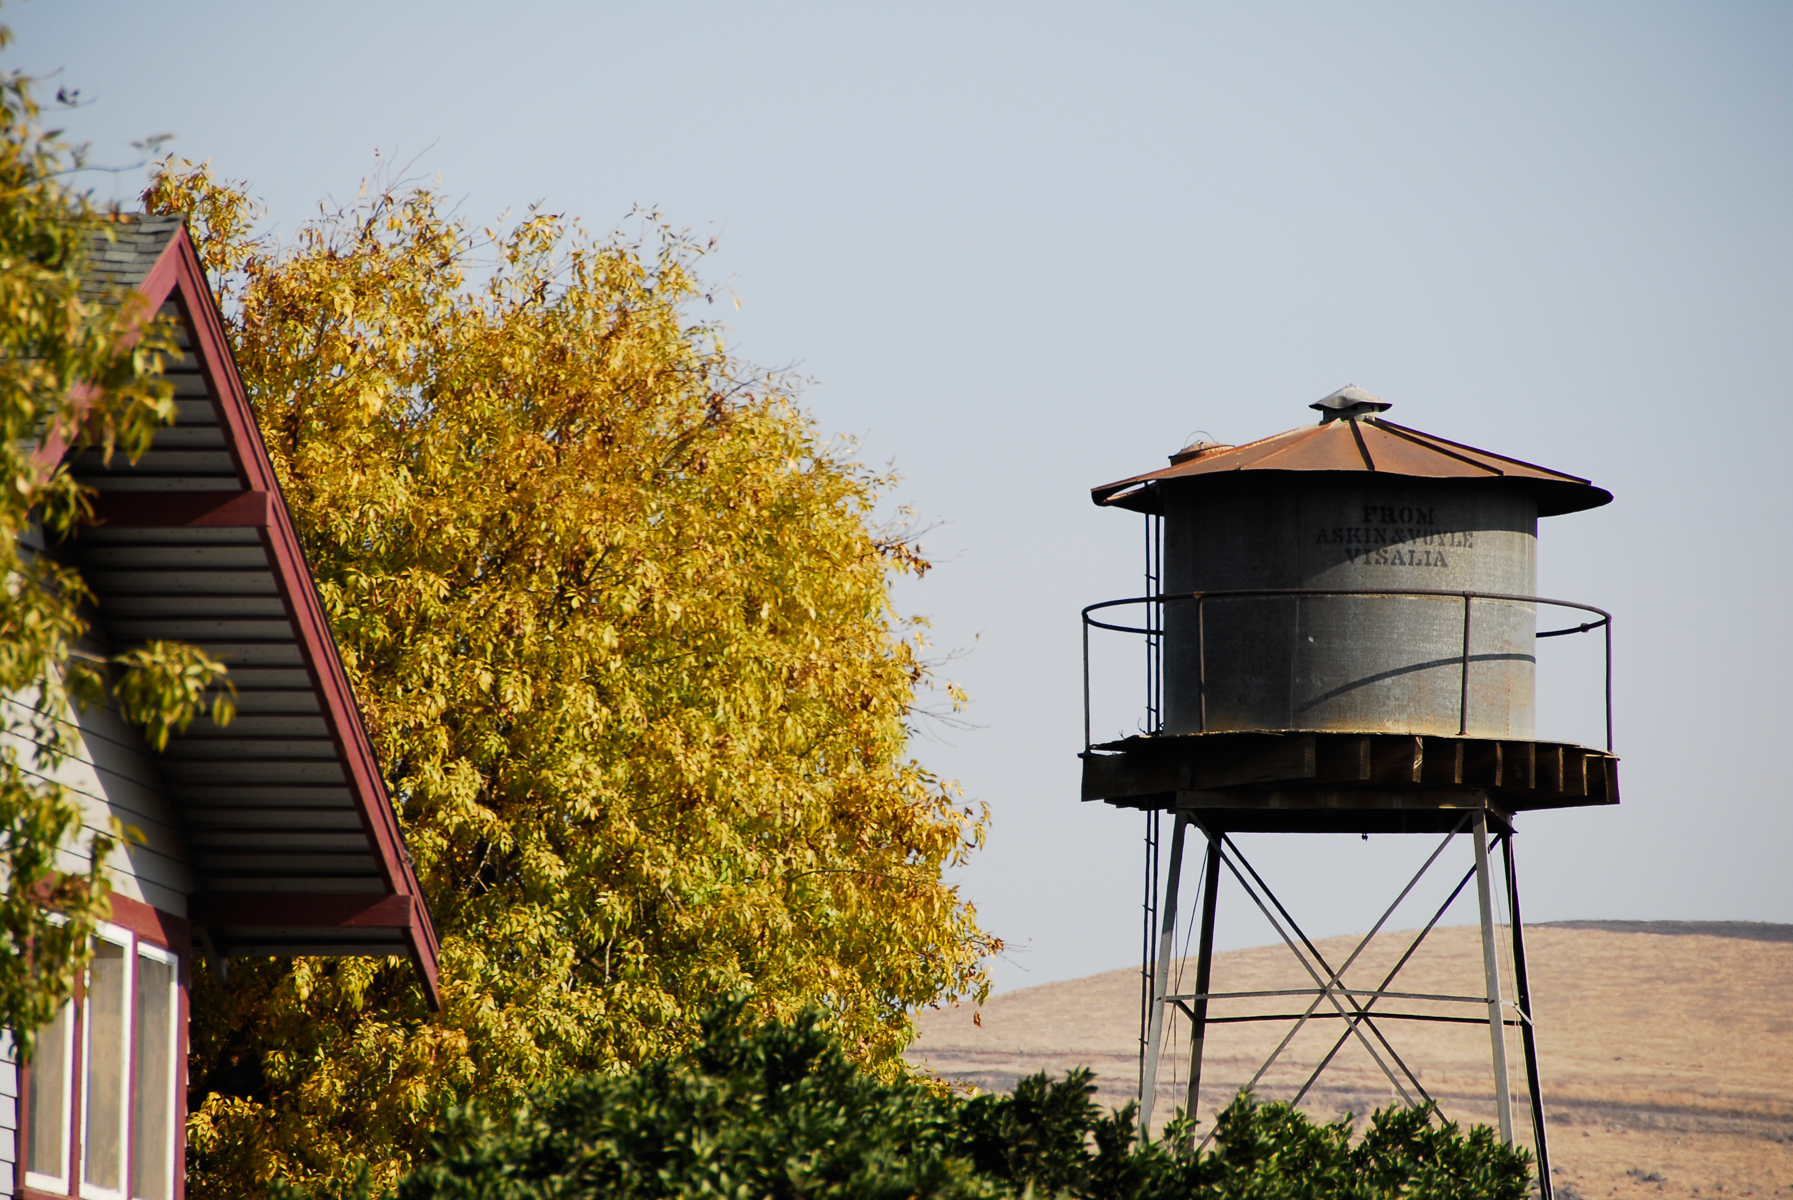 Water tank in the foothills photo